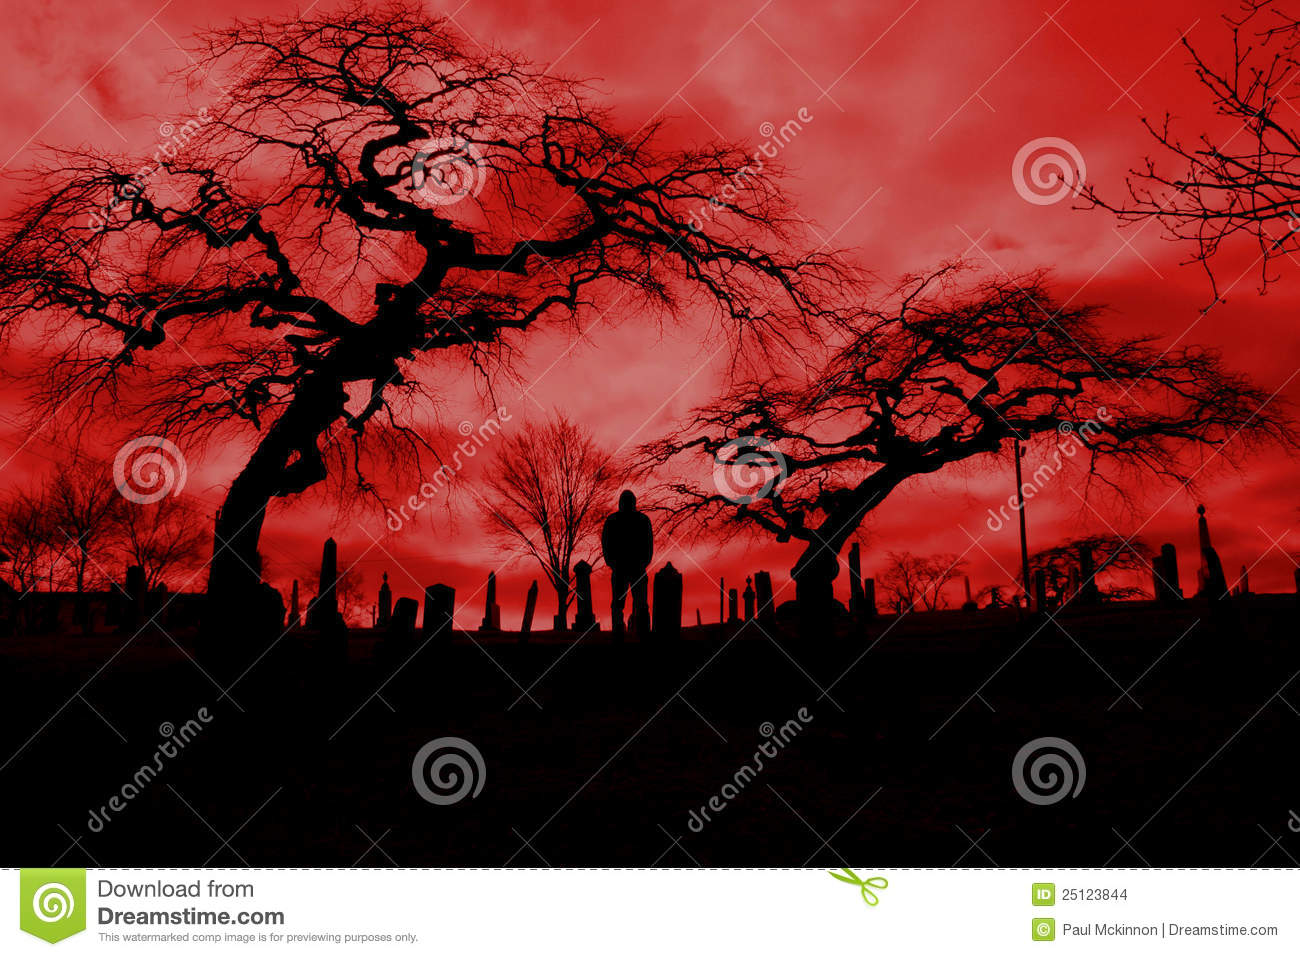 Red sky clipart.